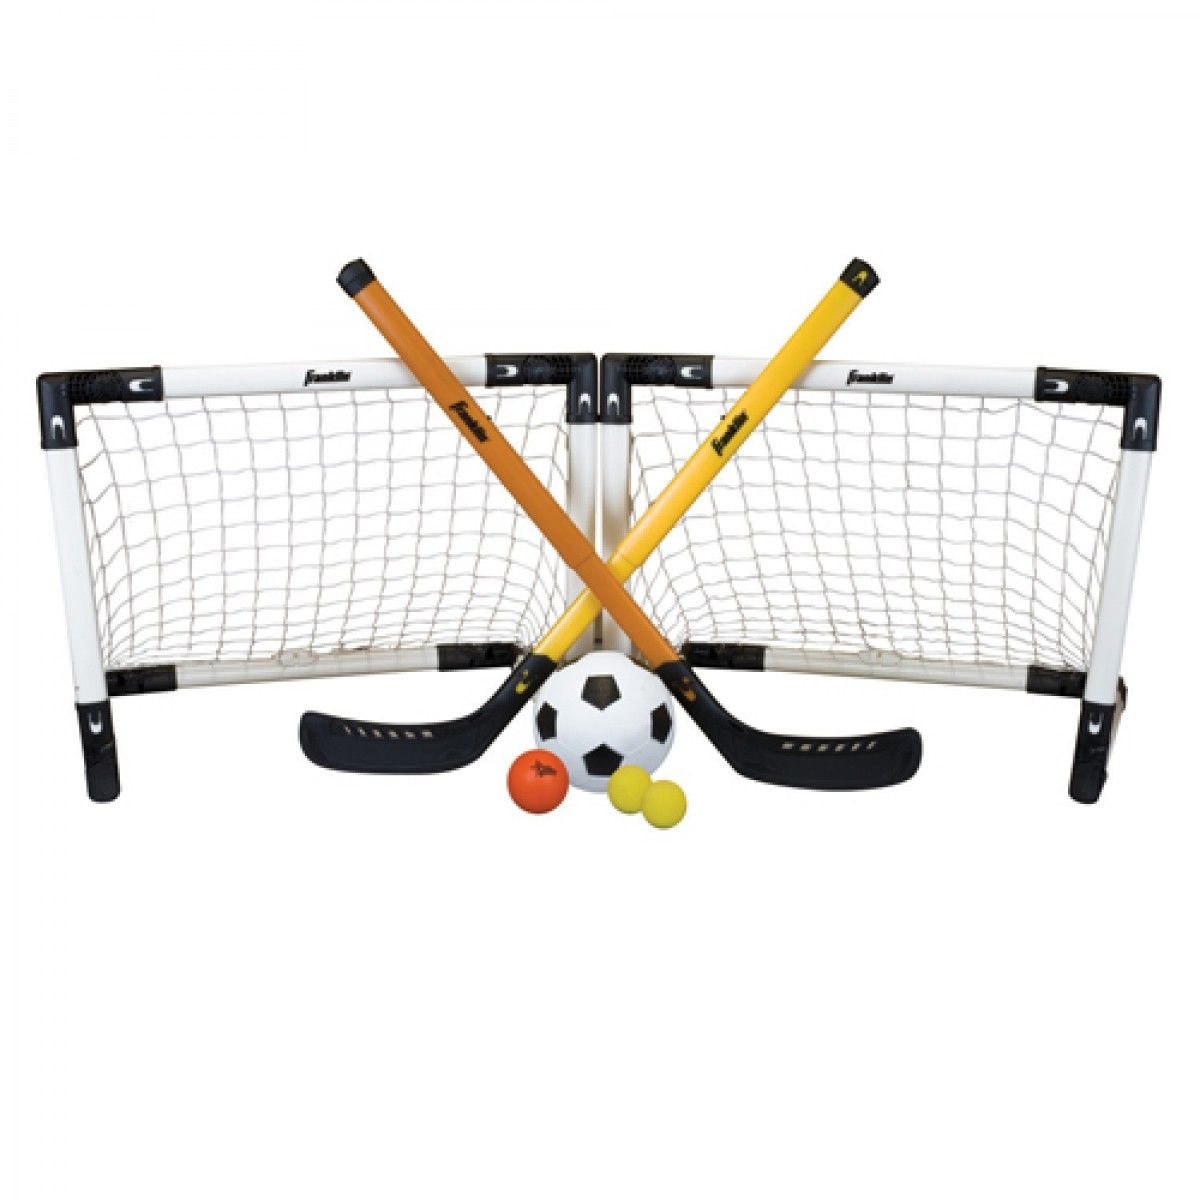 3 In 1 Indoor Sports Set Indoor Sports Sports Games For Kids Franklin Sports